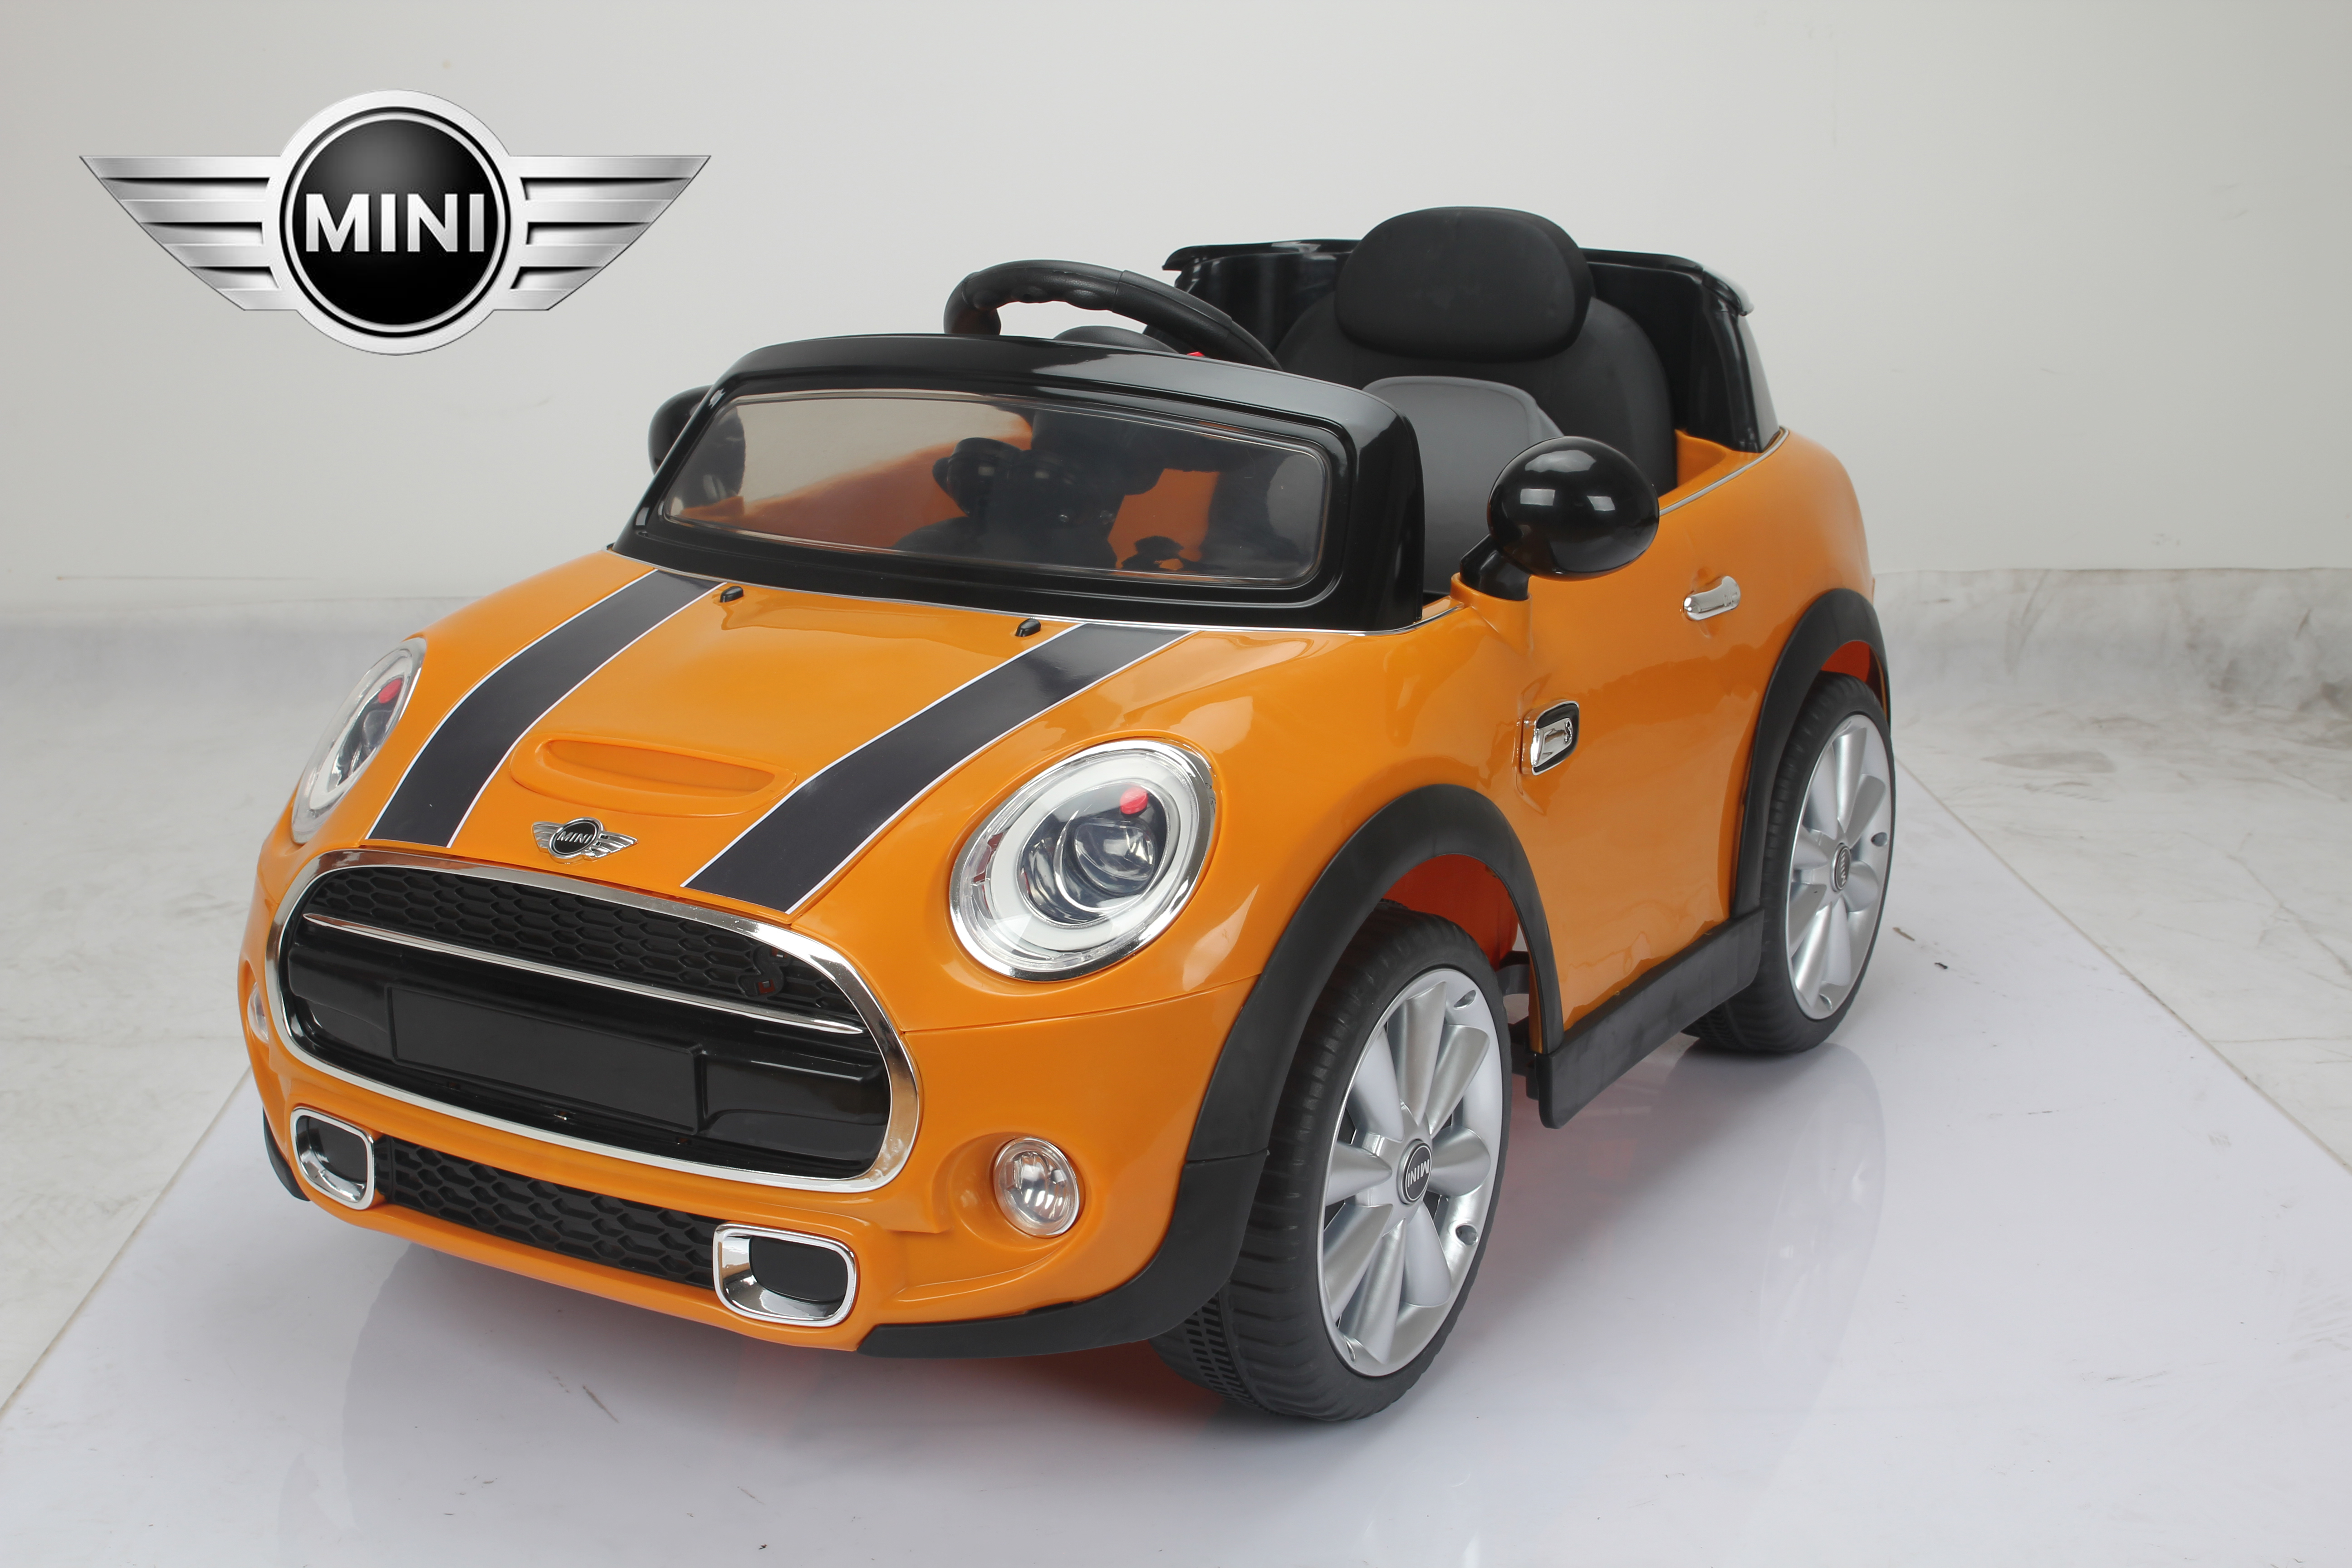 mini cooper licensed 12v kids ride on car twin motor remote control cars orange 7484320343970 ebay. Black Bedroom Furniture Sets. Home Design Ideas